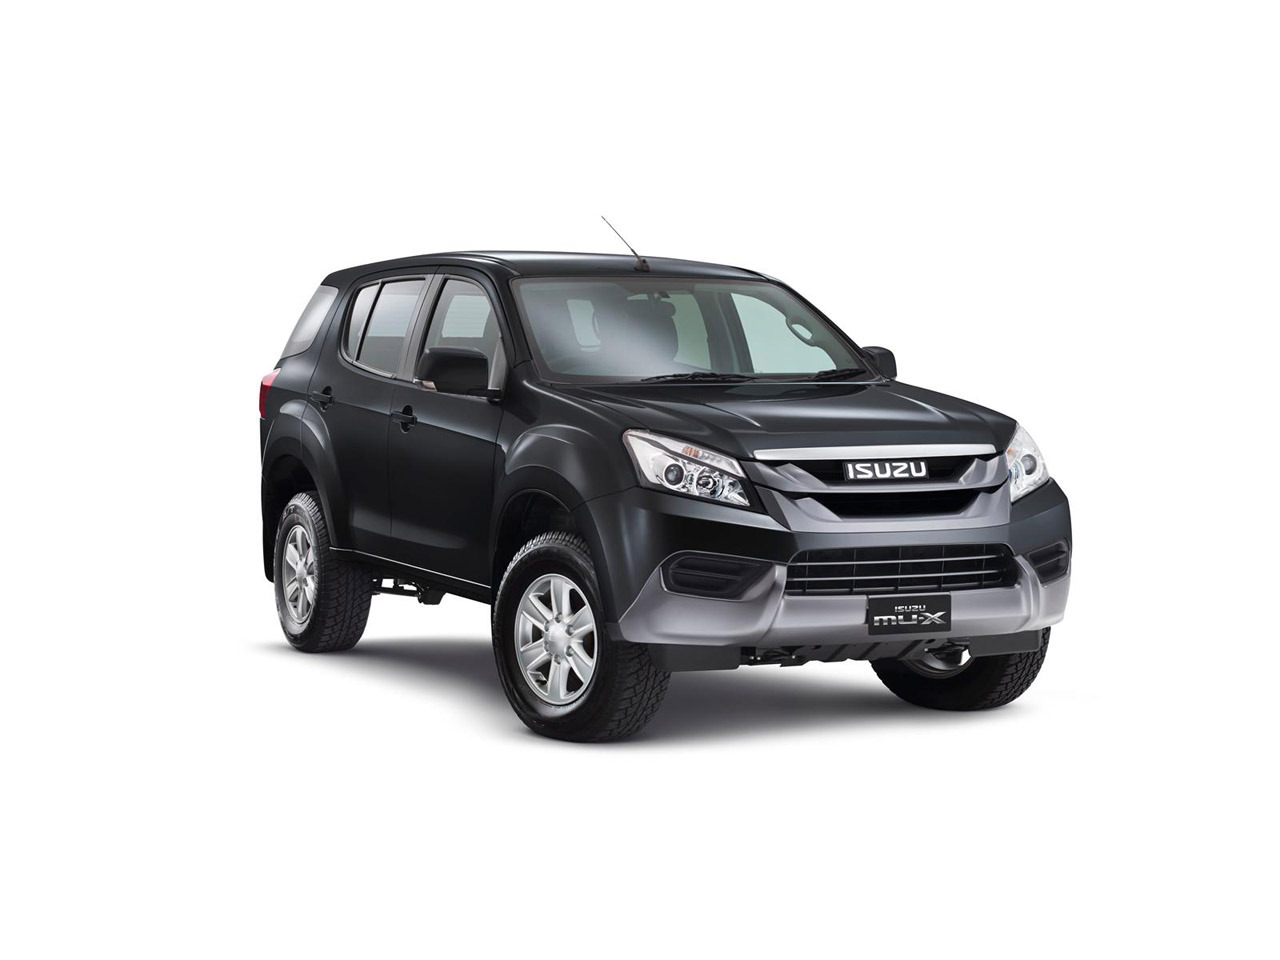 Isuzu is readying-up the MU-X SUV for an Indian launch